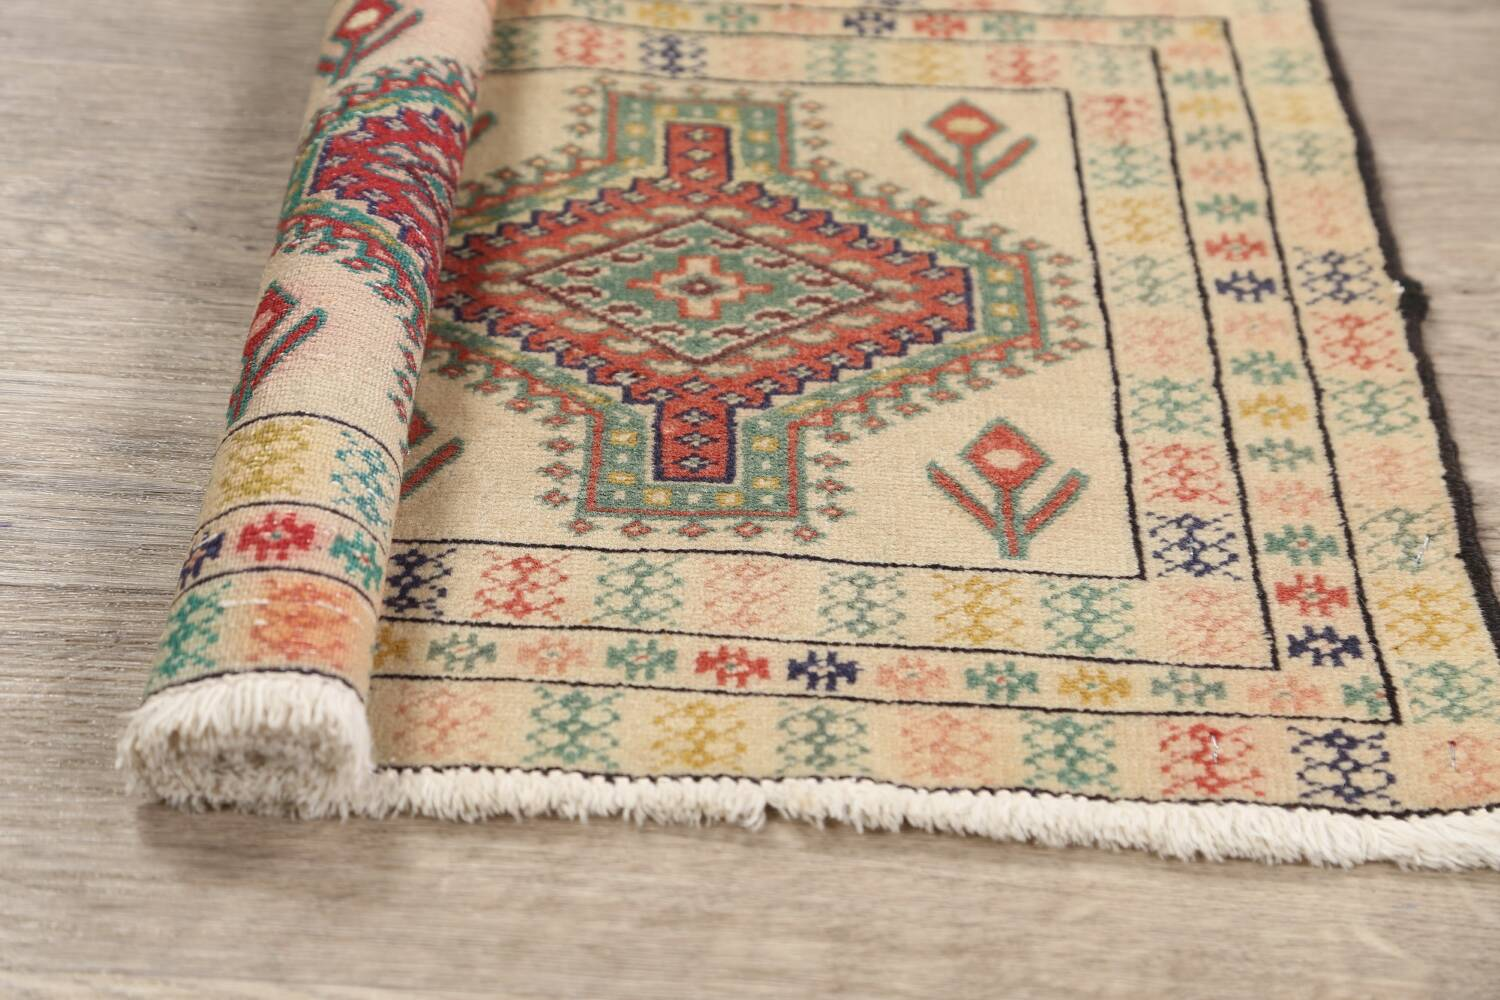 South-Western Style Bokhara Oriental Area Rug 1x2 image 12